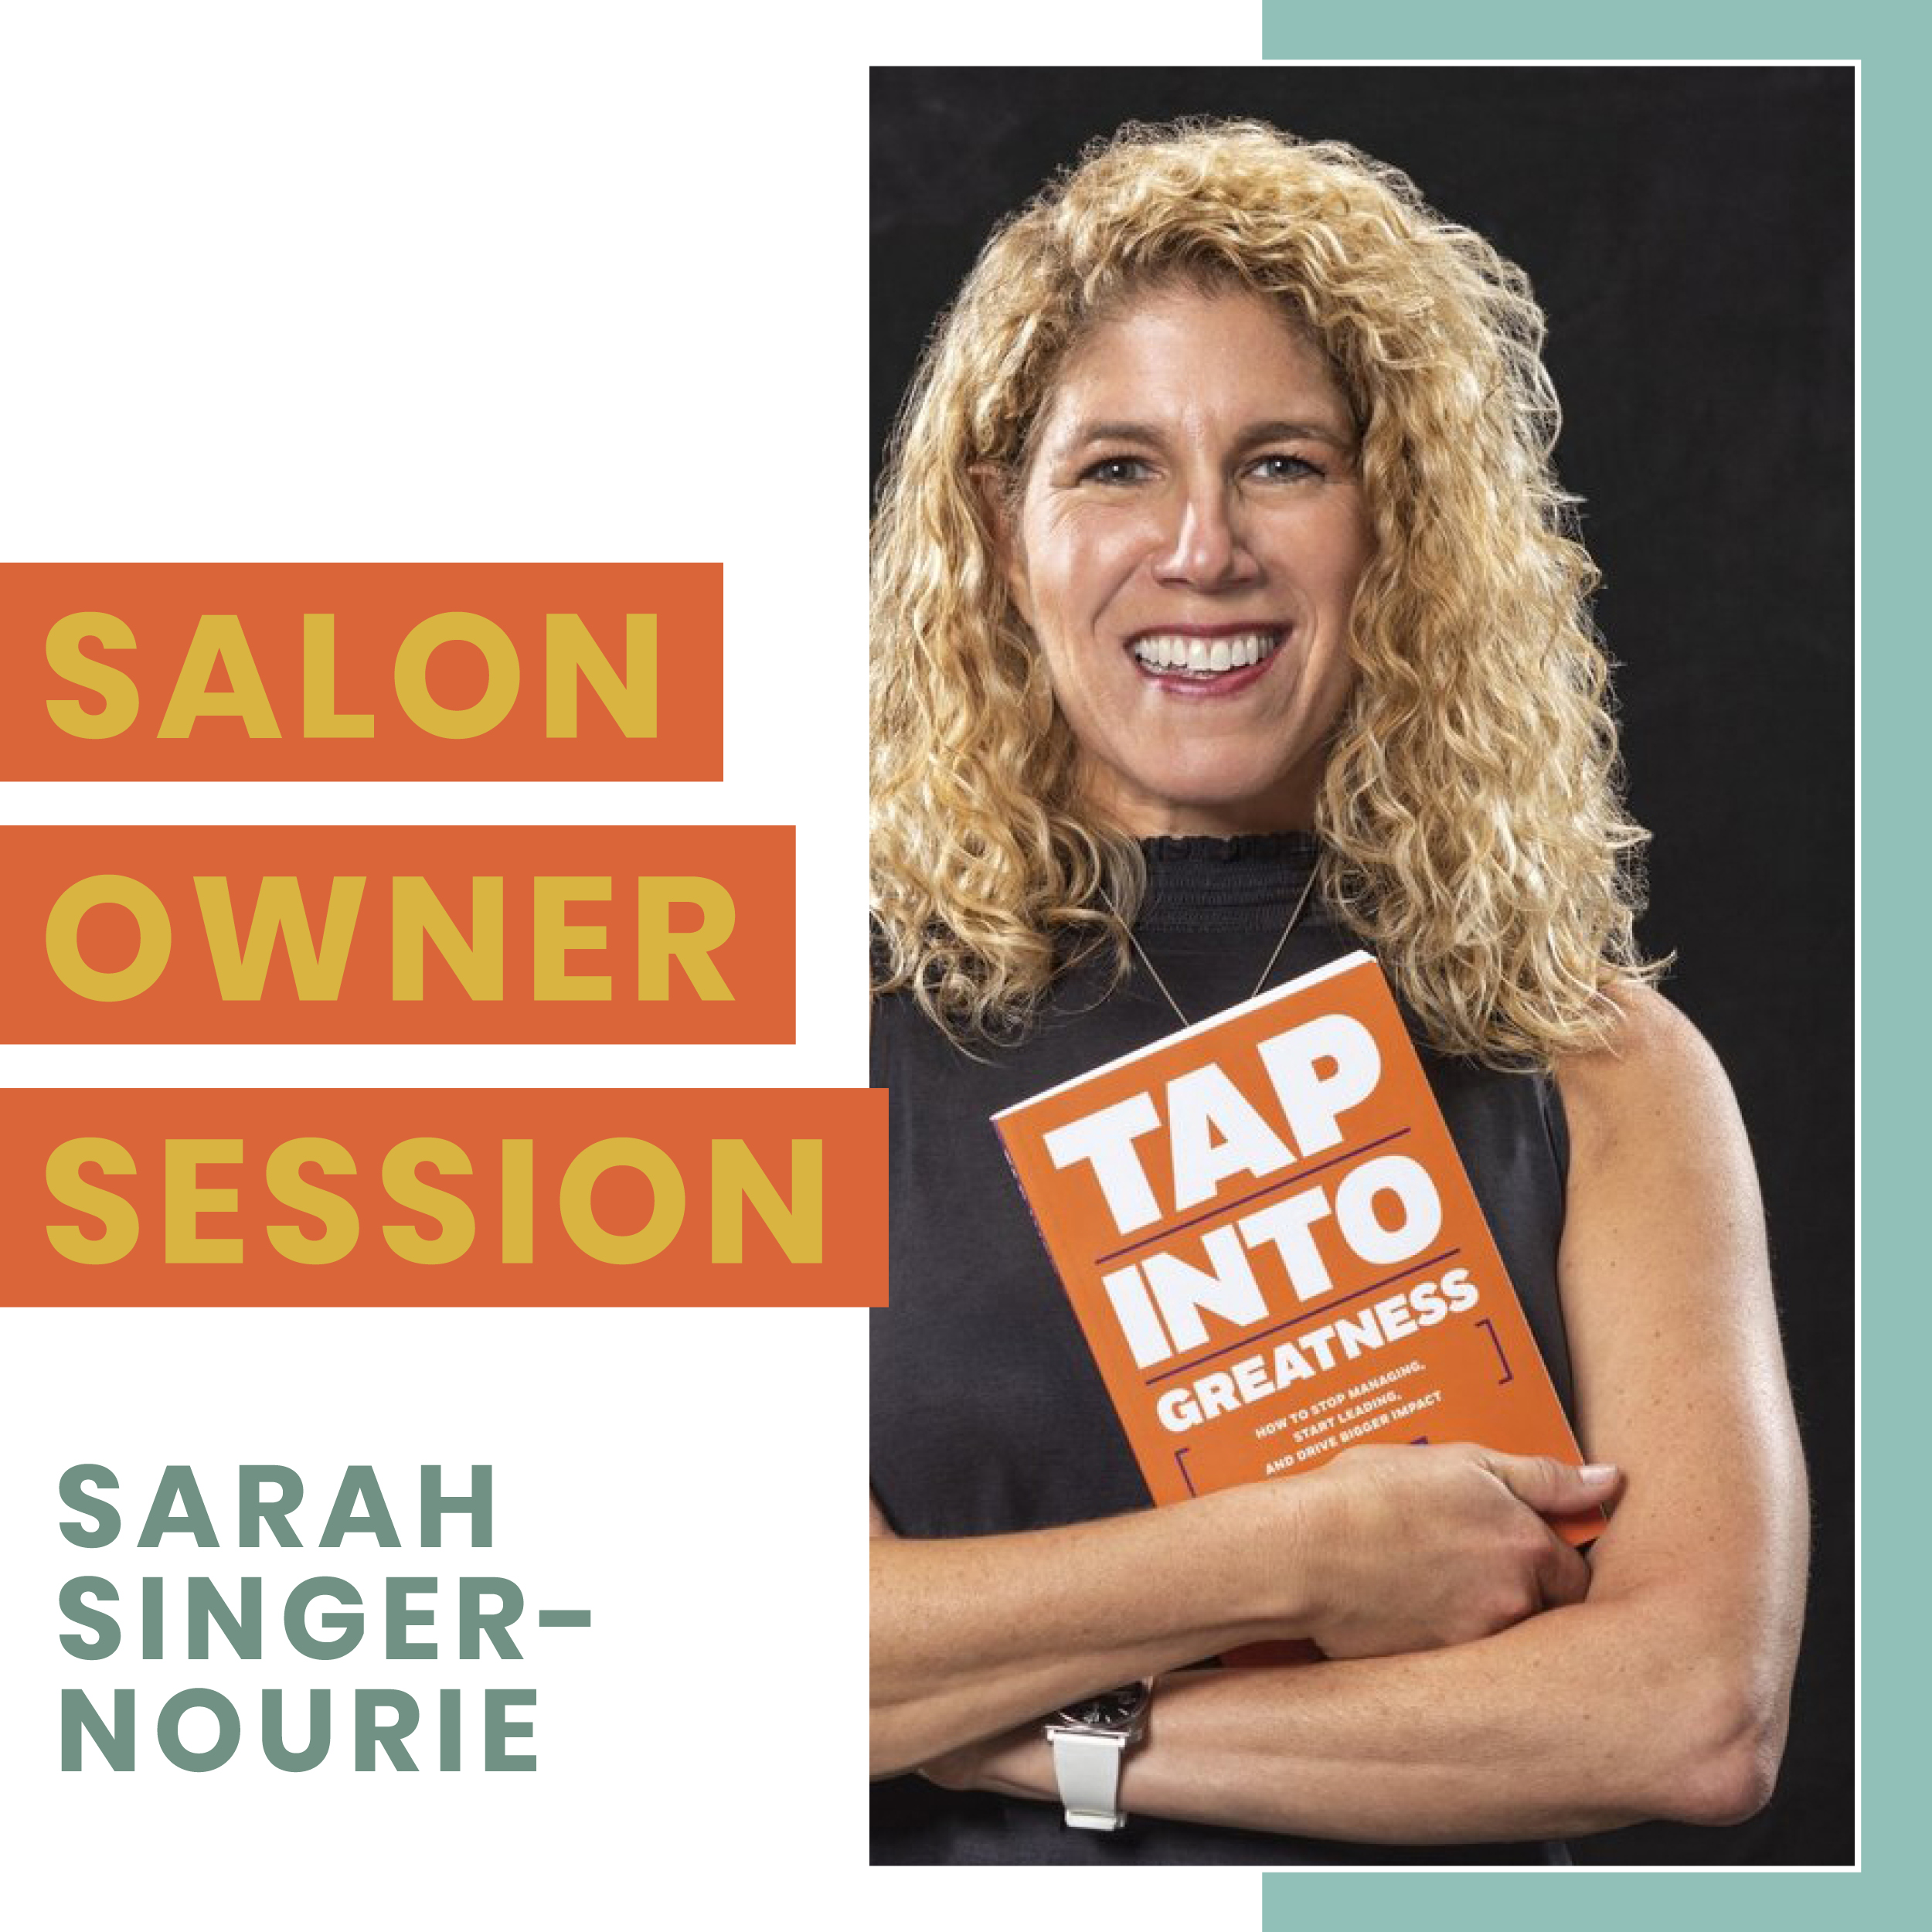 - *SALON OWNERS & MANAGERS ONLY* Have you ever noticed how 3 different people can execute the same technical steps, but create wildly different results? Do you want to get more consistent about the impact you know you can have on your team, and that your team can have in the world? In this power-packed session, we'll unlock all of that, and set you up to be able to get deeper, broader, more intentional impact across your business and your influence, in everything you do and everyone you interact with as a leader.More about Sarah